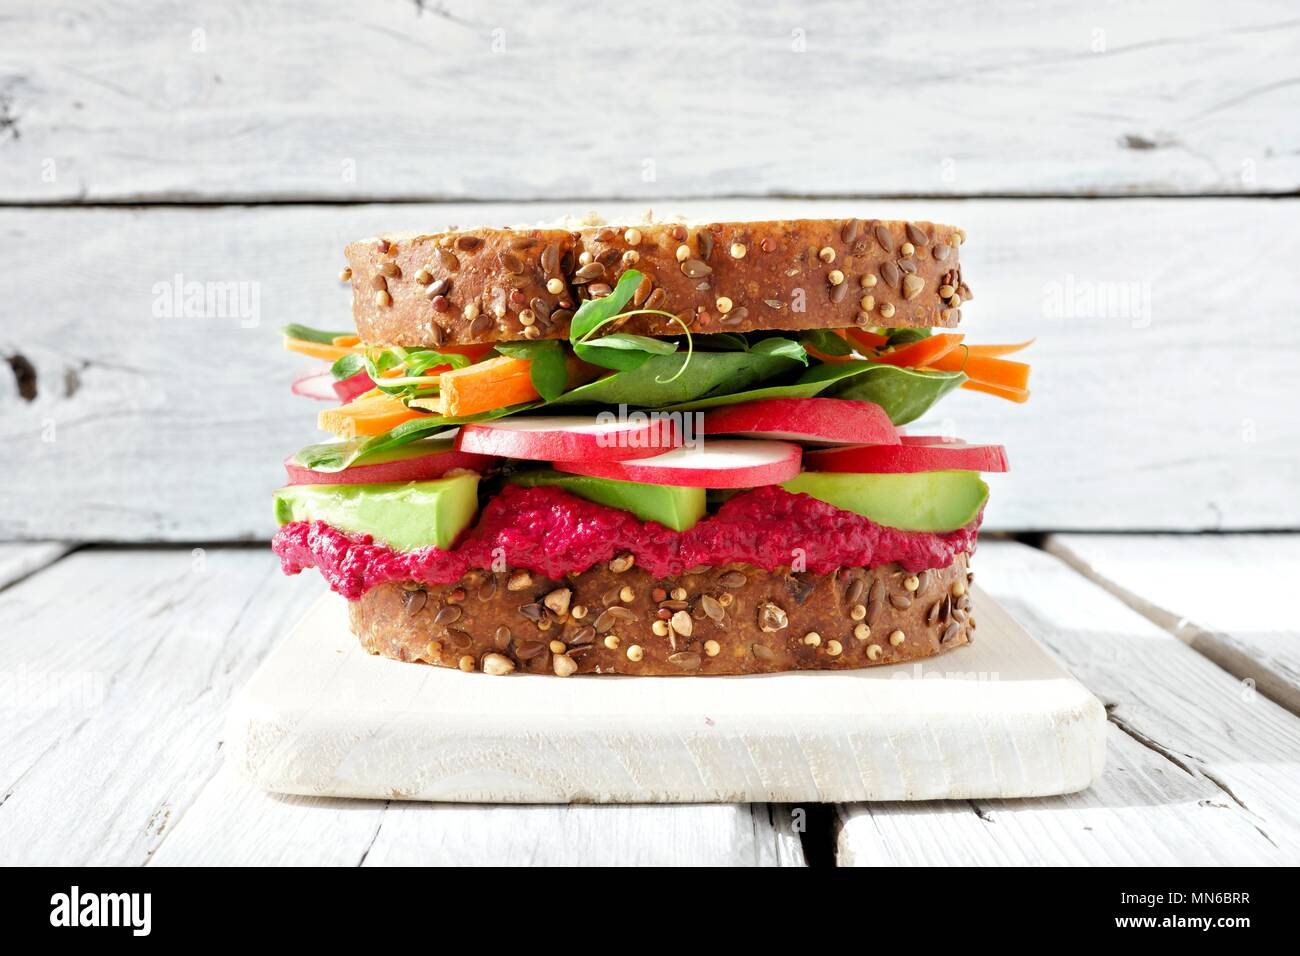 Superfood sandwich with beet hummus, avocado, vegetables and greens, on whole grain bread against a white wood background - Stock Image